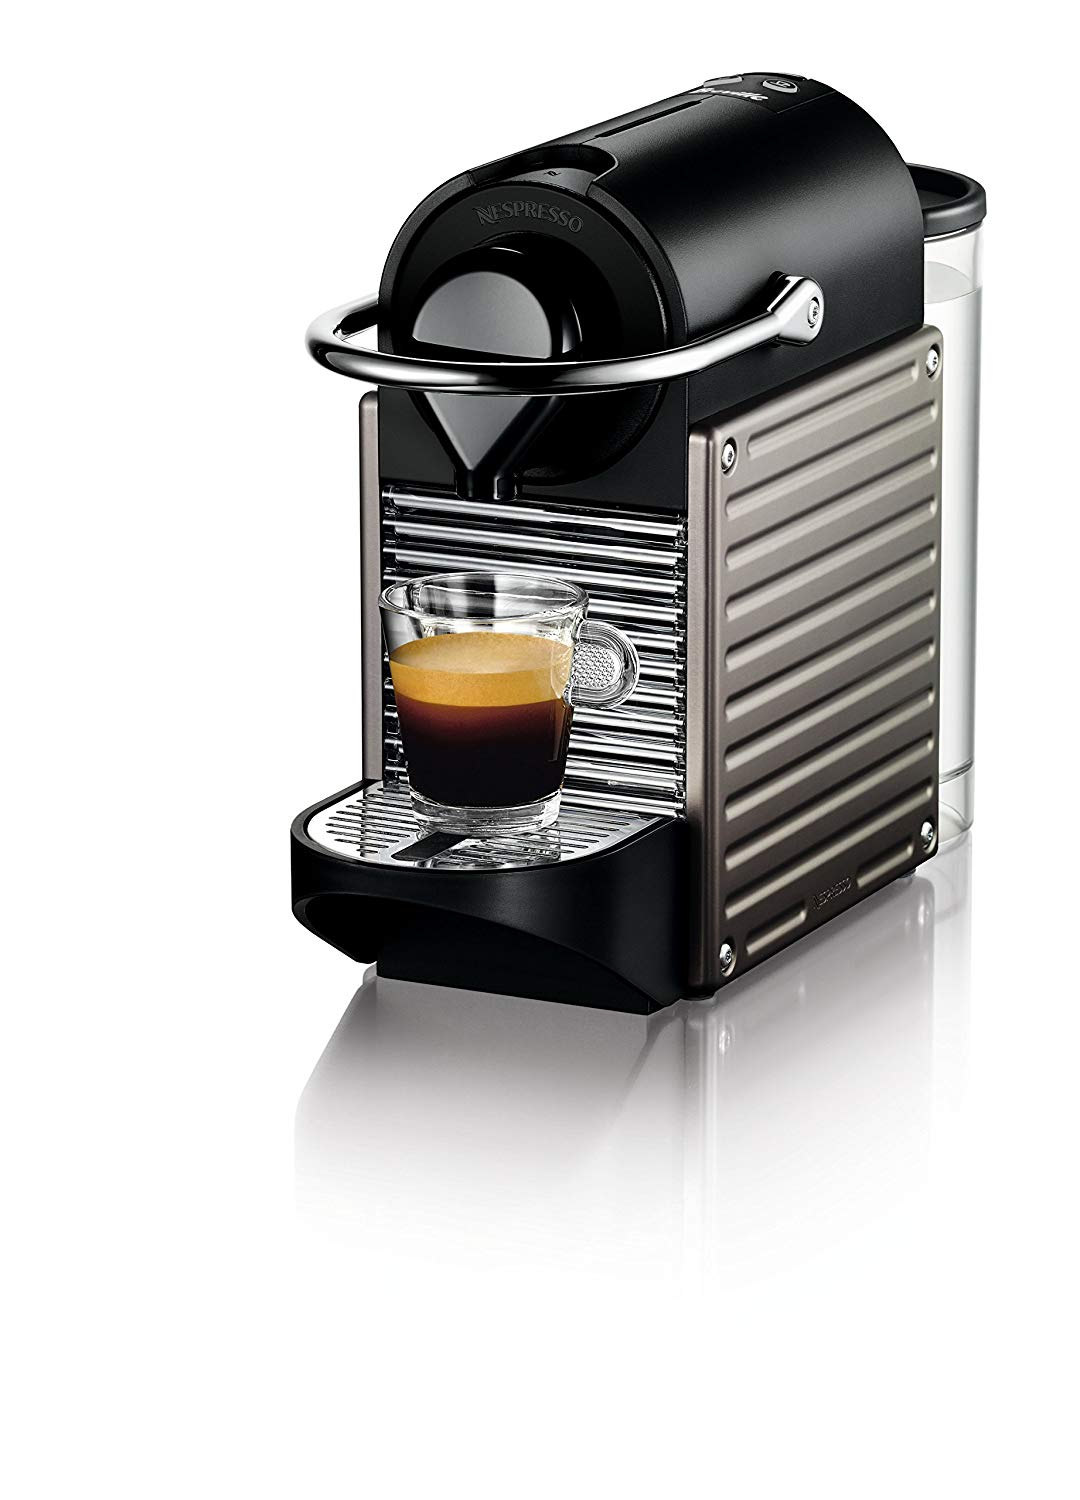 $249 - Nespresso Pixie Machine w/ Milk Frother | We keep this sucker in our bedroom and sharing an espresso before we come downstairs and wake the monsters has been a game changer for all of life.